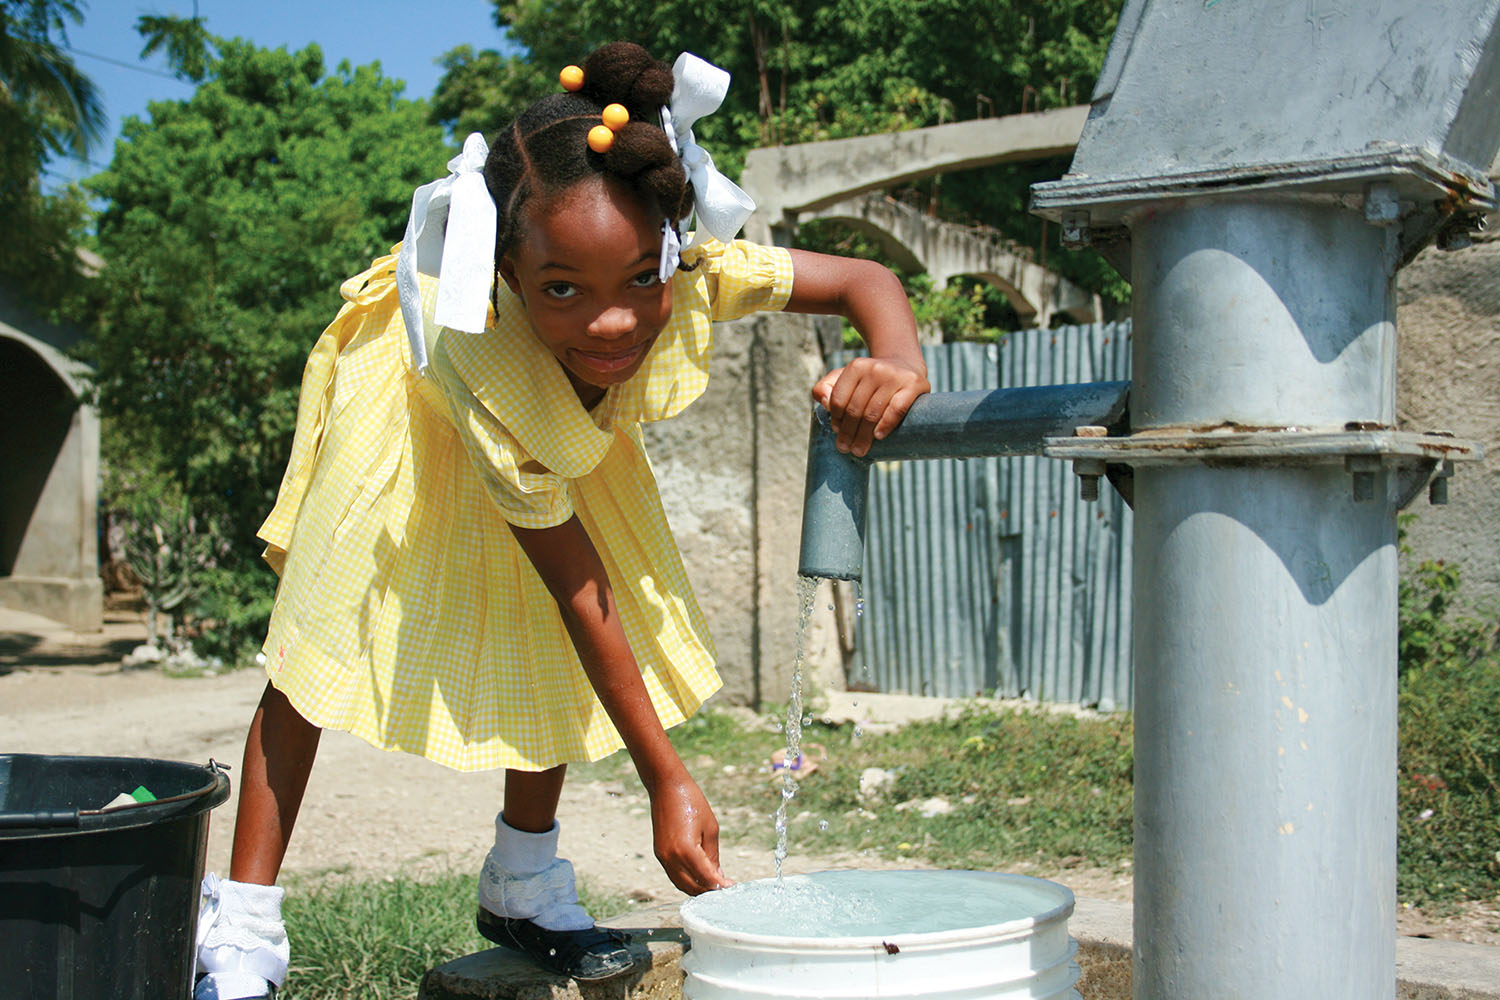 In Haiti, clean drinking water prevents disease. Give the gift of water that keeps on giving.Your generosity makes it possible for us to drill new wells in more villages.